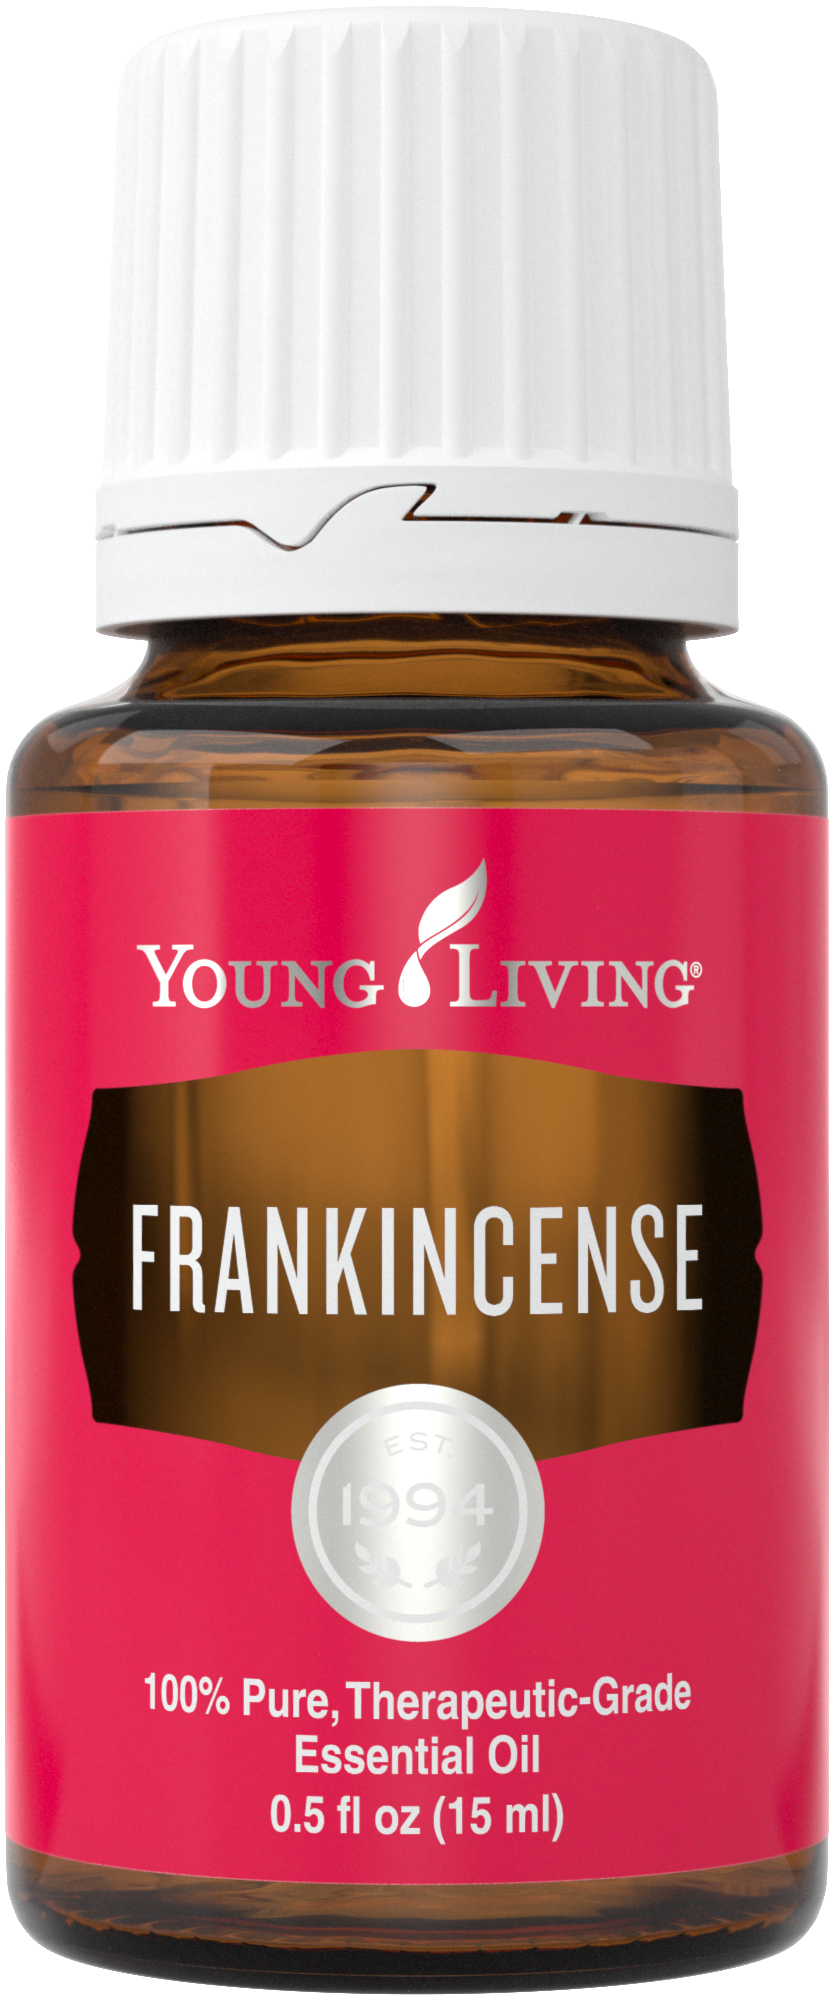 Young Living Frankincense Essentil Oil Is A Top 10